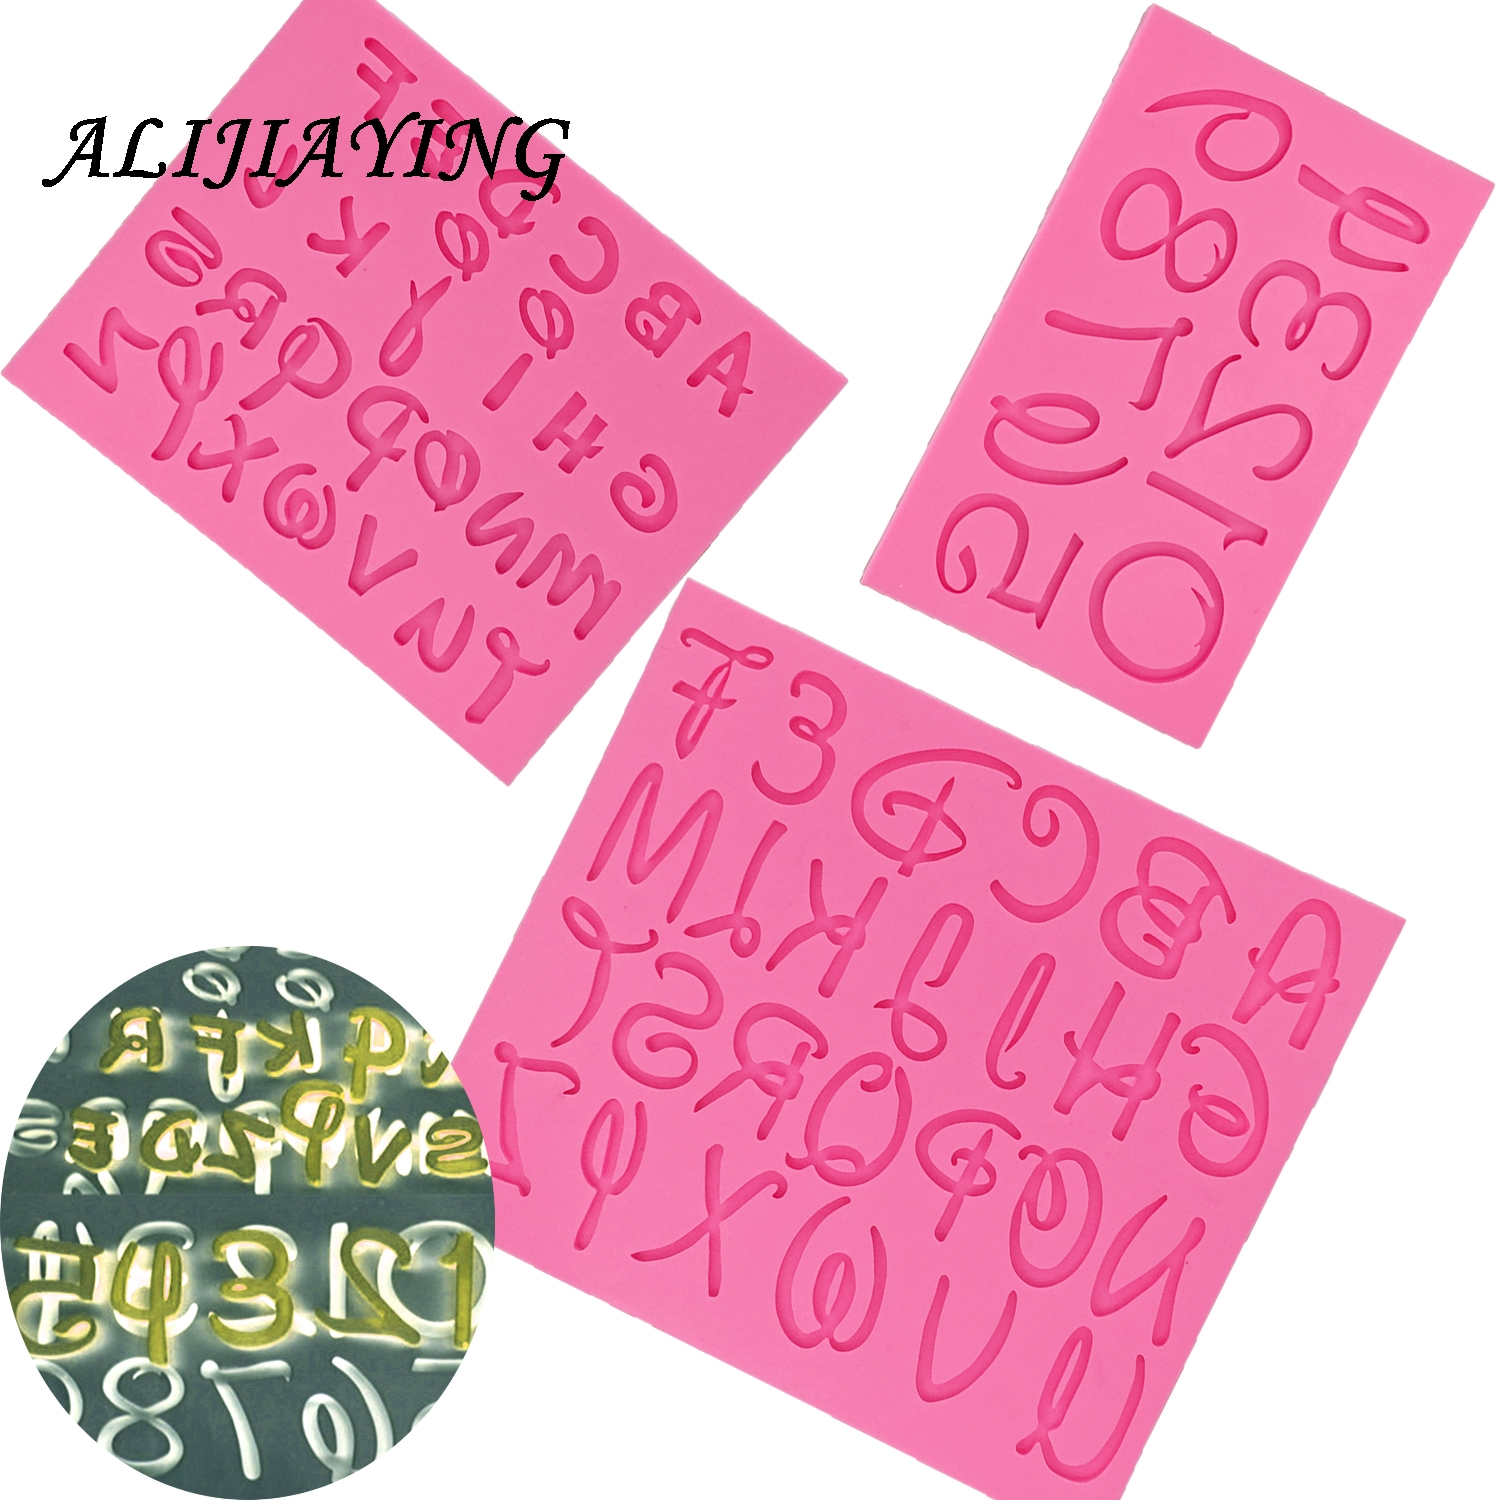 DIY <font><b>Letter</b></font> and number Silicone Mold Fondant digital <font><b>Cake</b></font> <font><b>Decorating</b></font> <font><b>Tools</b></font> dessert Sugarcraft Chocolate supply D1273 image